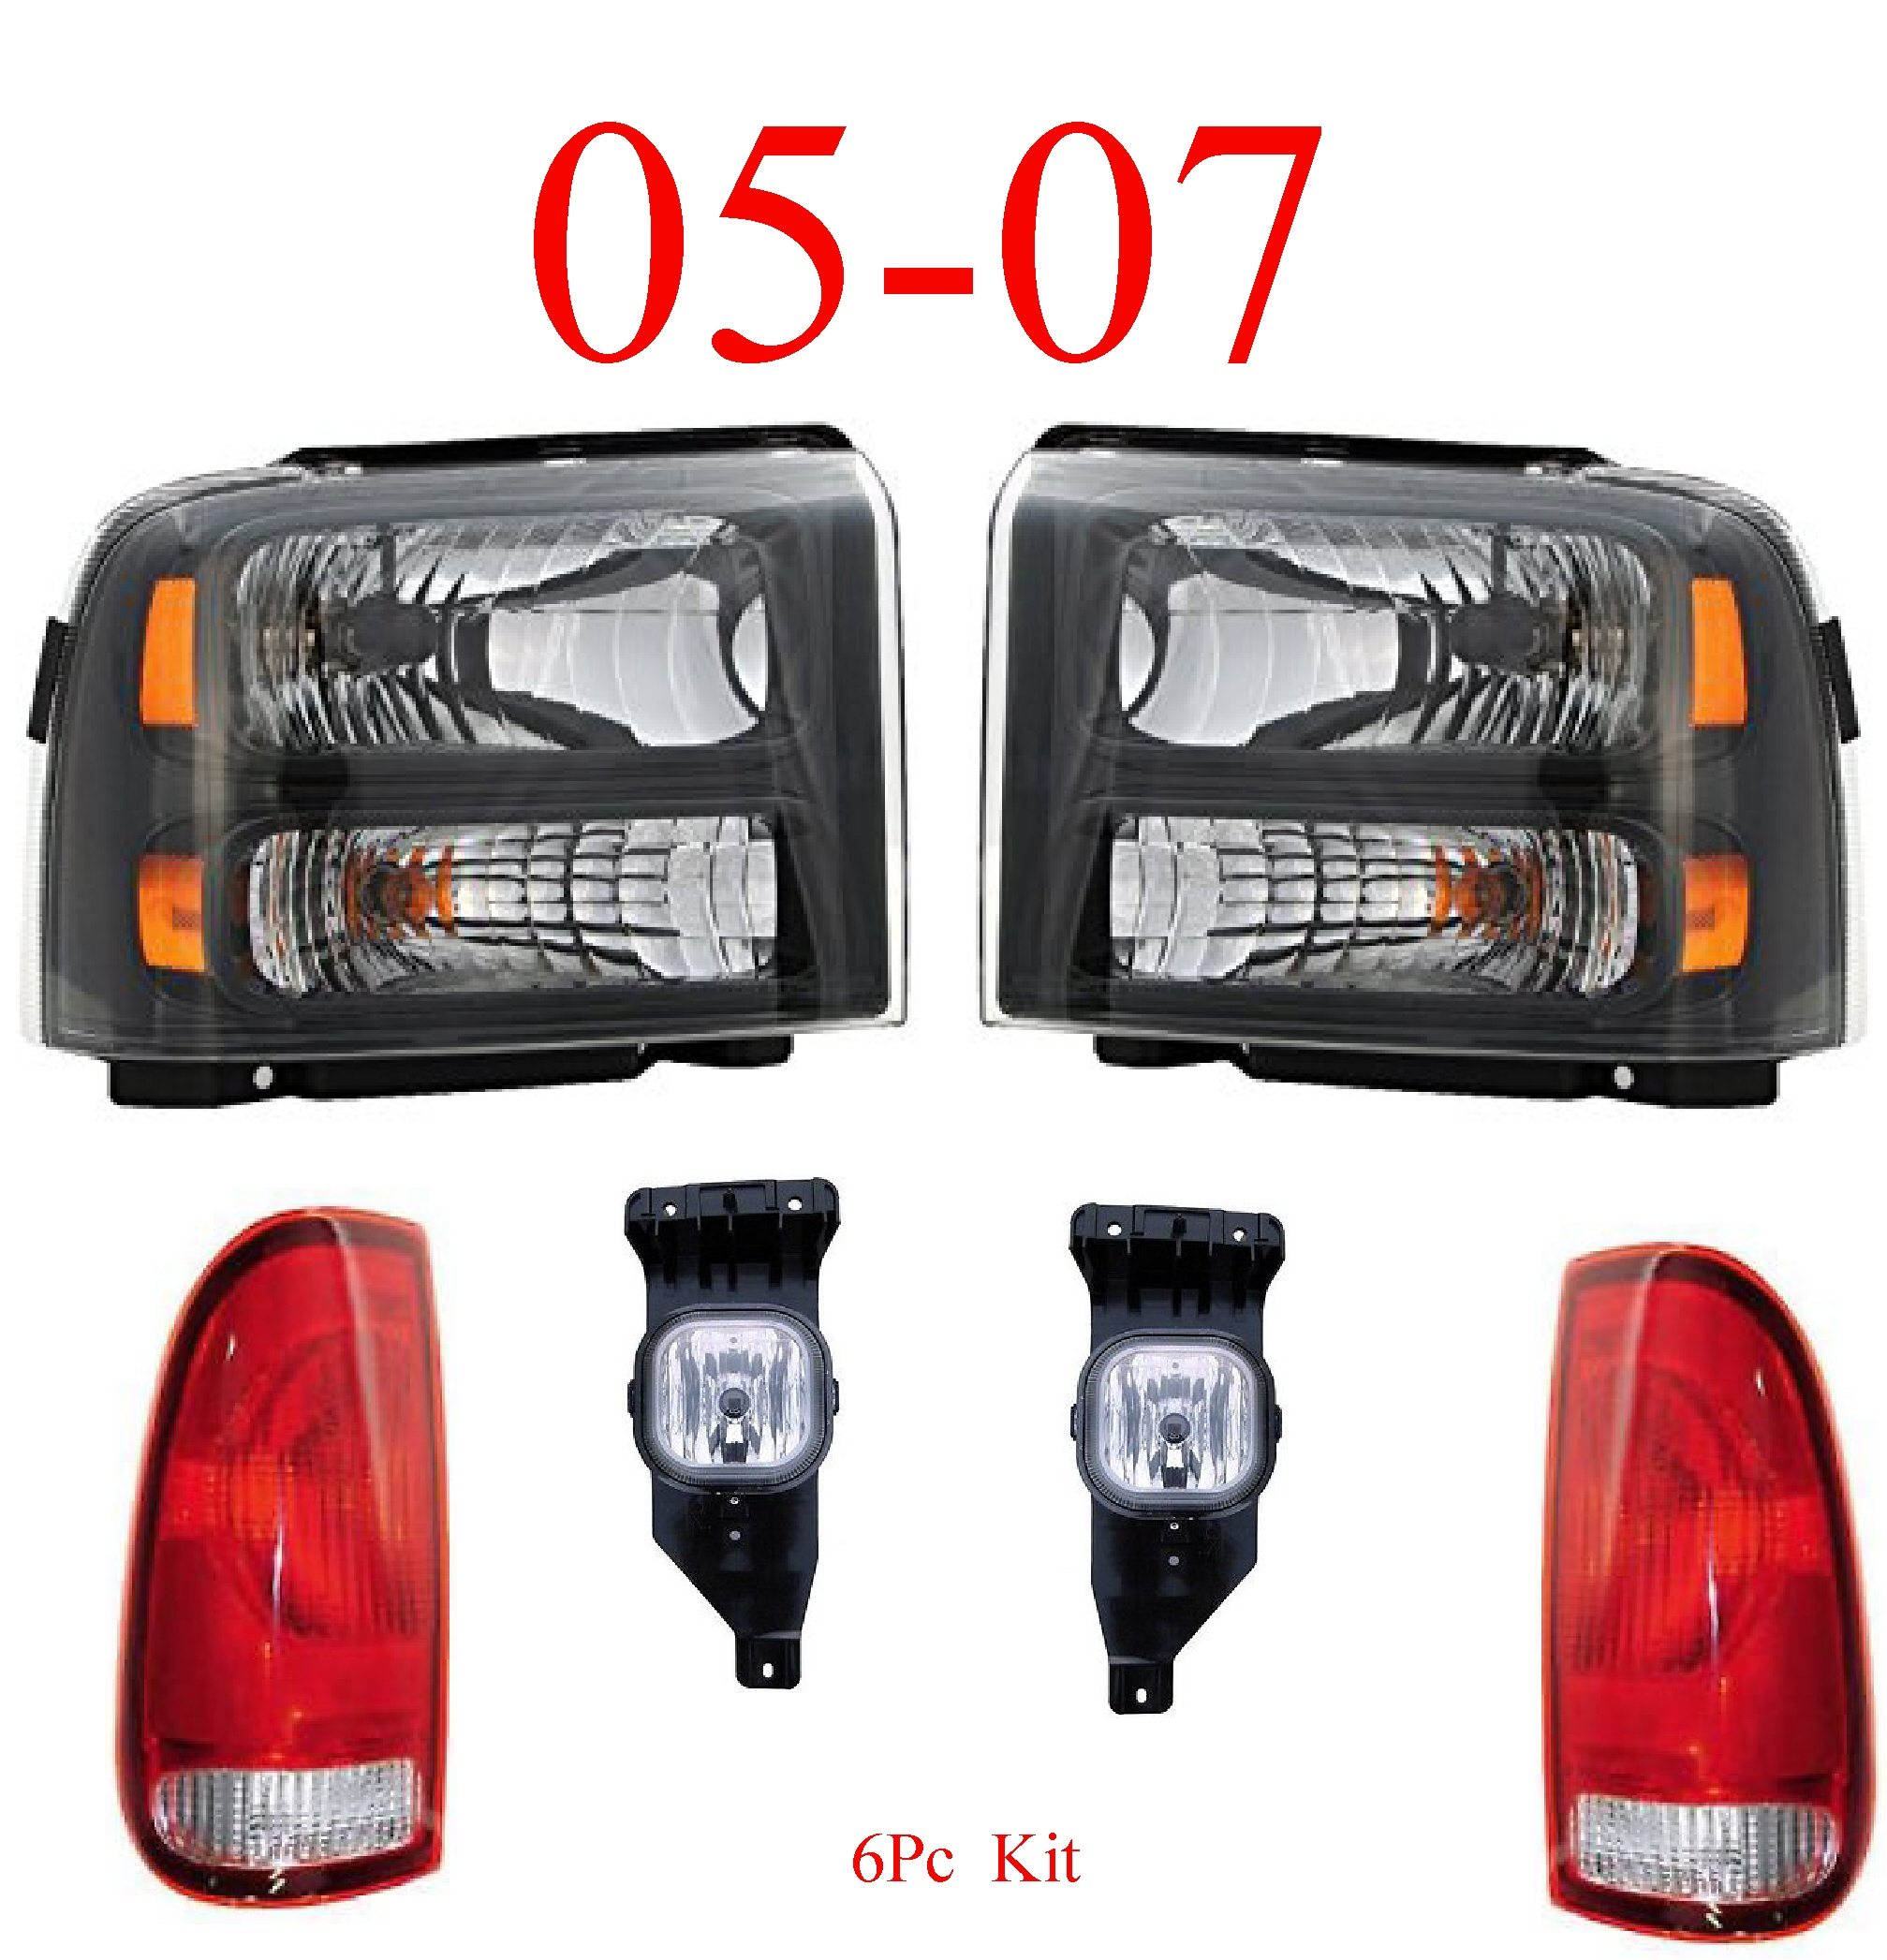 05-07 Ford Super Duty 6Pc Head, Fog & Tail Light Harley Davidson